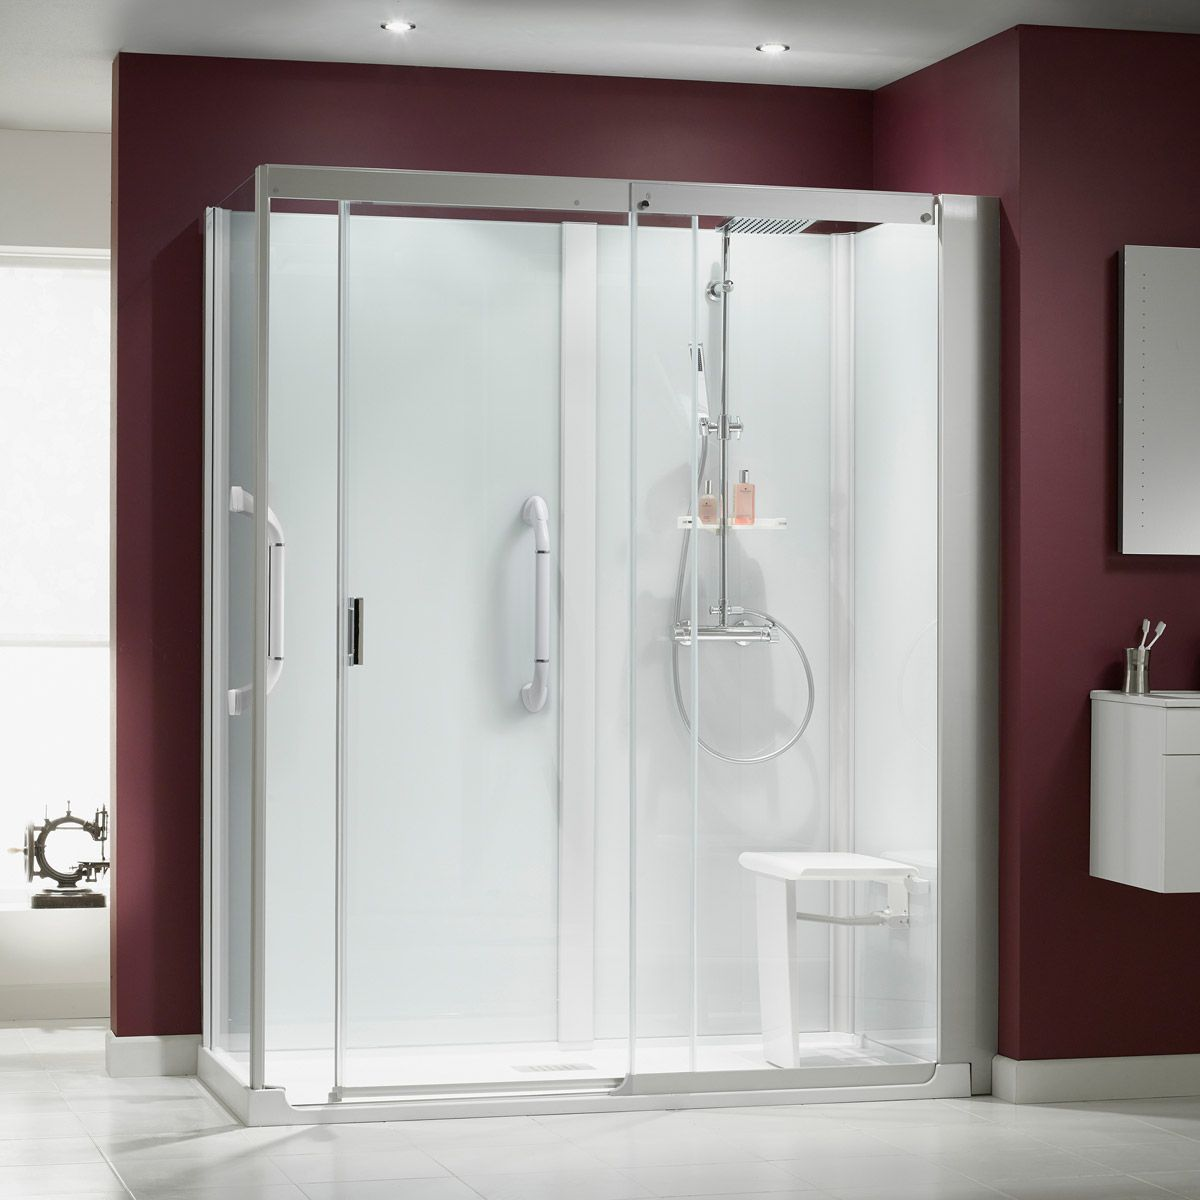 All In One Shower Enclosure And Thermostatic Shower Designed To Fit The Exact Footprint Of Your Old Bathtub 2499 Corner Shower Shower Cubicles Shower Cabin